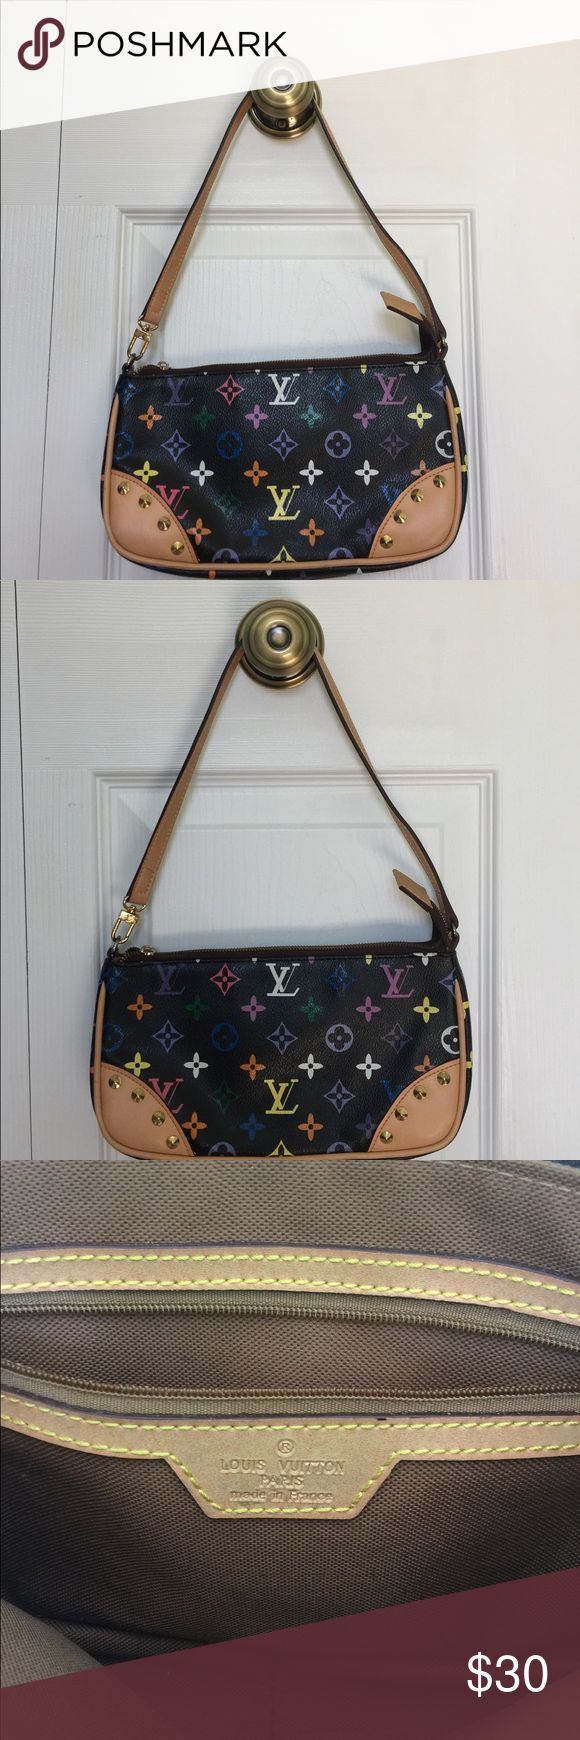 Multicolored Louis Vuitton Small Handbag Gently used. Louis Vuitton handbag. My iPhone 6 Plus with the Otter Defender Case on it does not fit in this purse because the phone cover is too big. Without the phone case on my phone, my phone fits in it perfectly, but I always keep the case on it. I have used this purse a couple a of times. It's in gently used condition. Bags